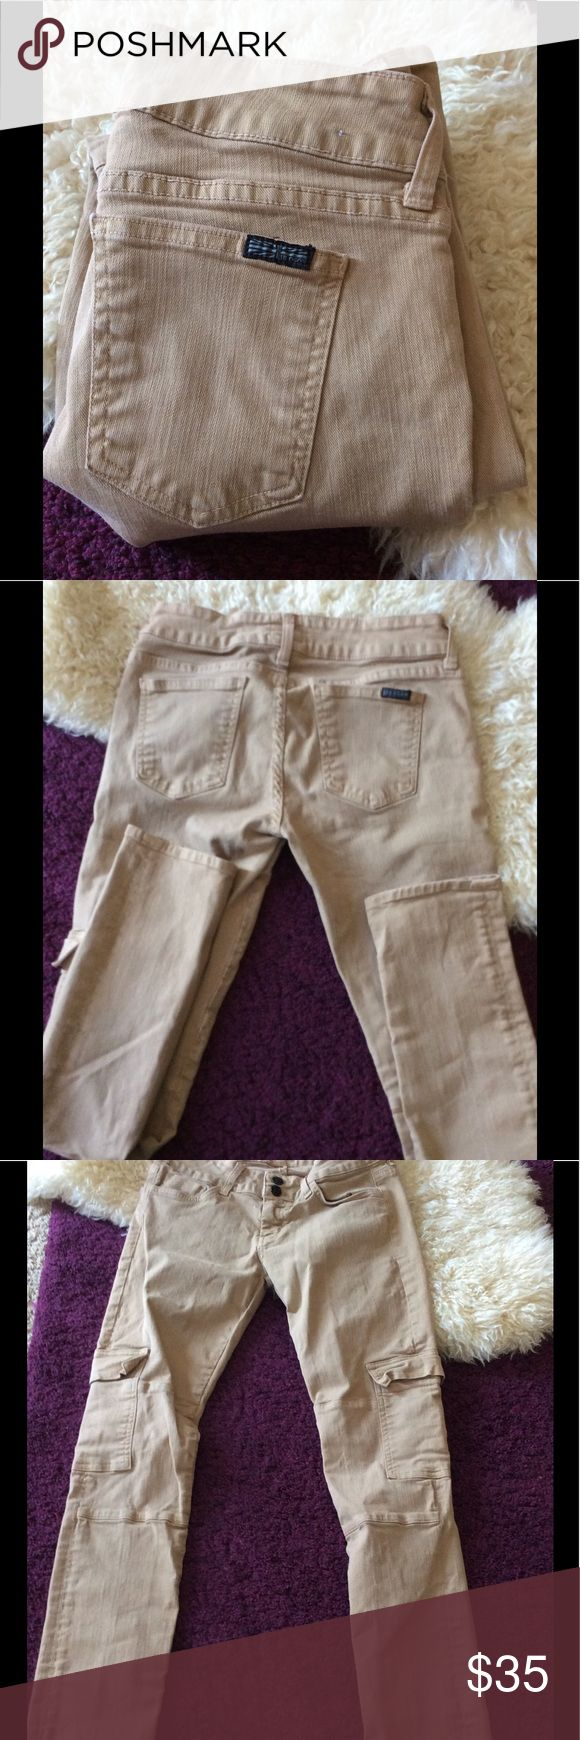 Hudson khaki cargo moto tan skinny jeans 28x29 Unique tan moto cargo skinny jeans from Hudson.tag reads Size 27 but measures 228x30 rise is 7.5 inches. Free of stains tears and holes! Hudson Jeans Jeans Skinny